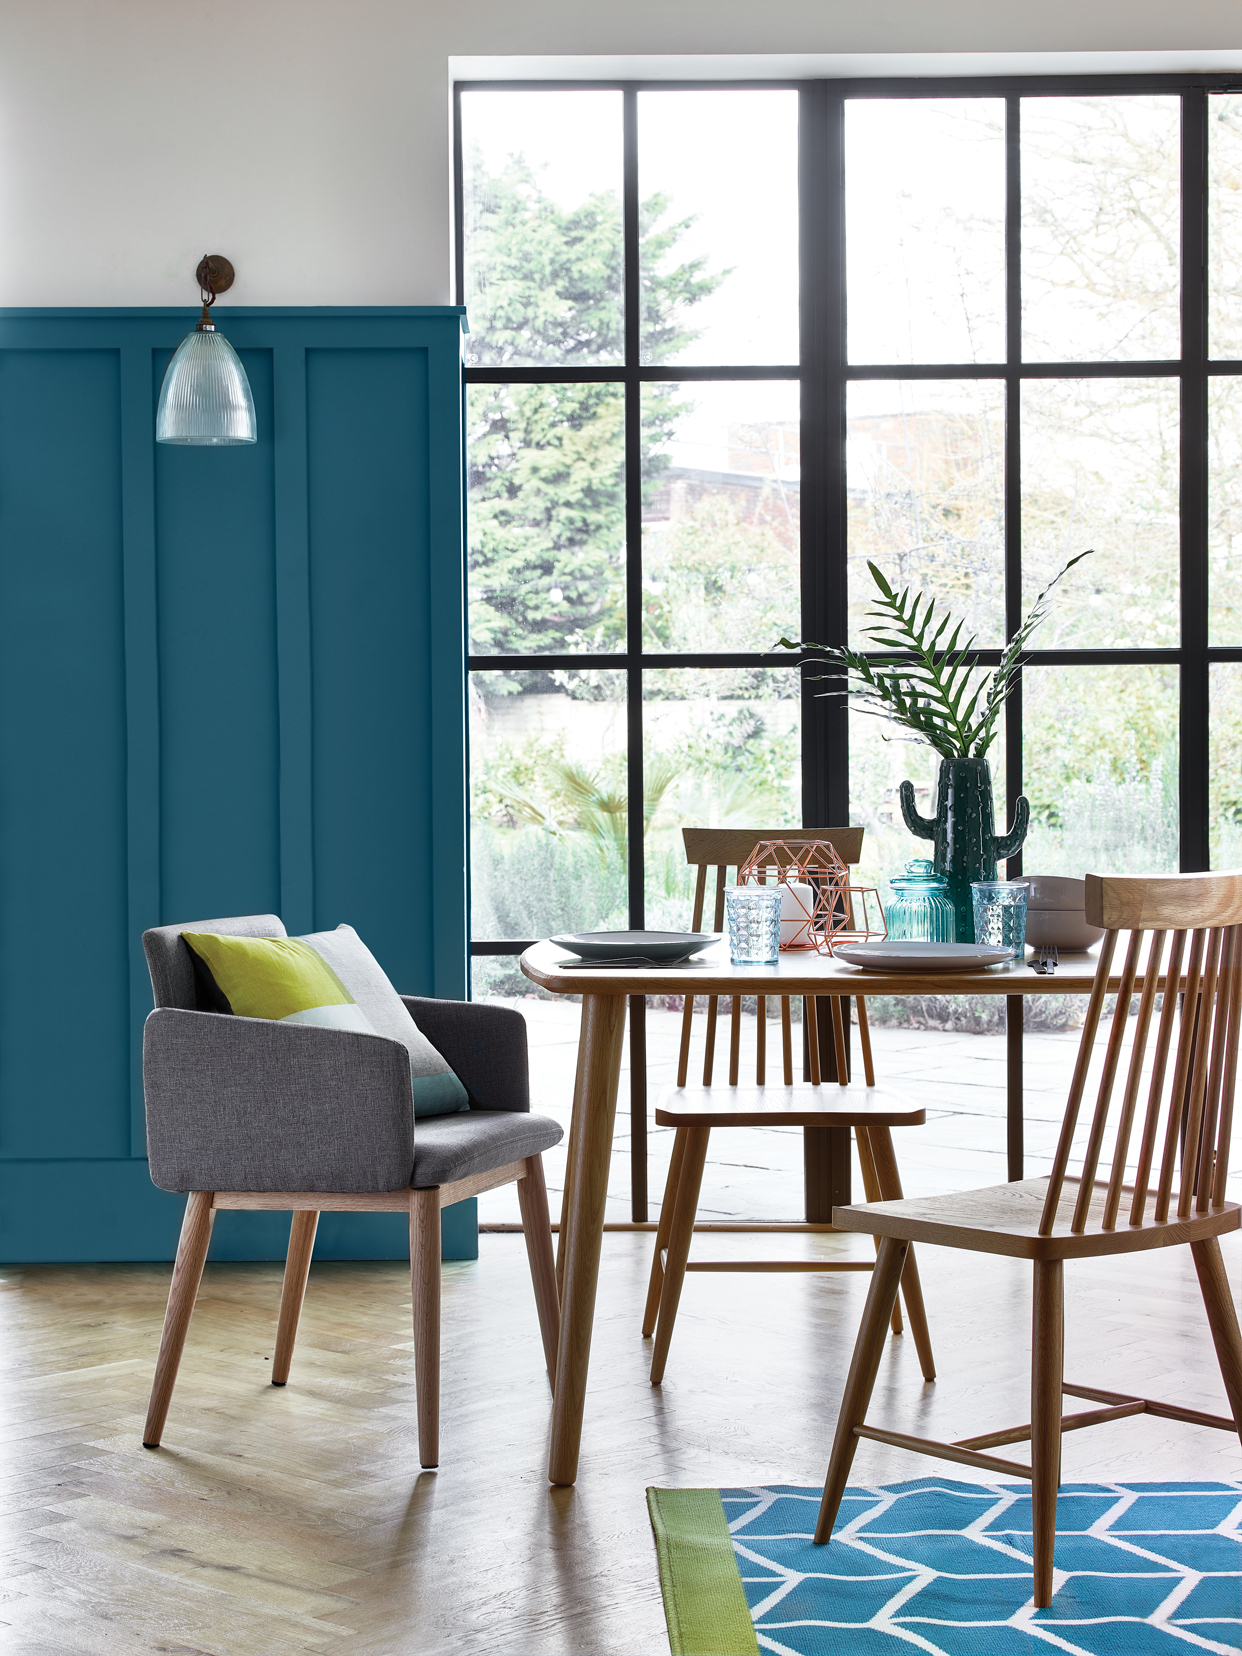 Retro upholstered grey chair, £59, Scandi Geo cushion - £6, Idris solid oak table - £259, Idris solid oak chairs - £99, Blushed pink 12 piece dinner set - £18, Jade dinner plates (set of 4) - £6, Copper wire candle holder - £10, Copper wire tealight holder - £3, Cactus vase - £12, Textured glass - £1.50, Satin Ripley 16 piece cutlery set - £15, Homemaker teal chevron rug - £40.